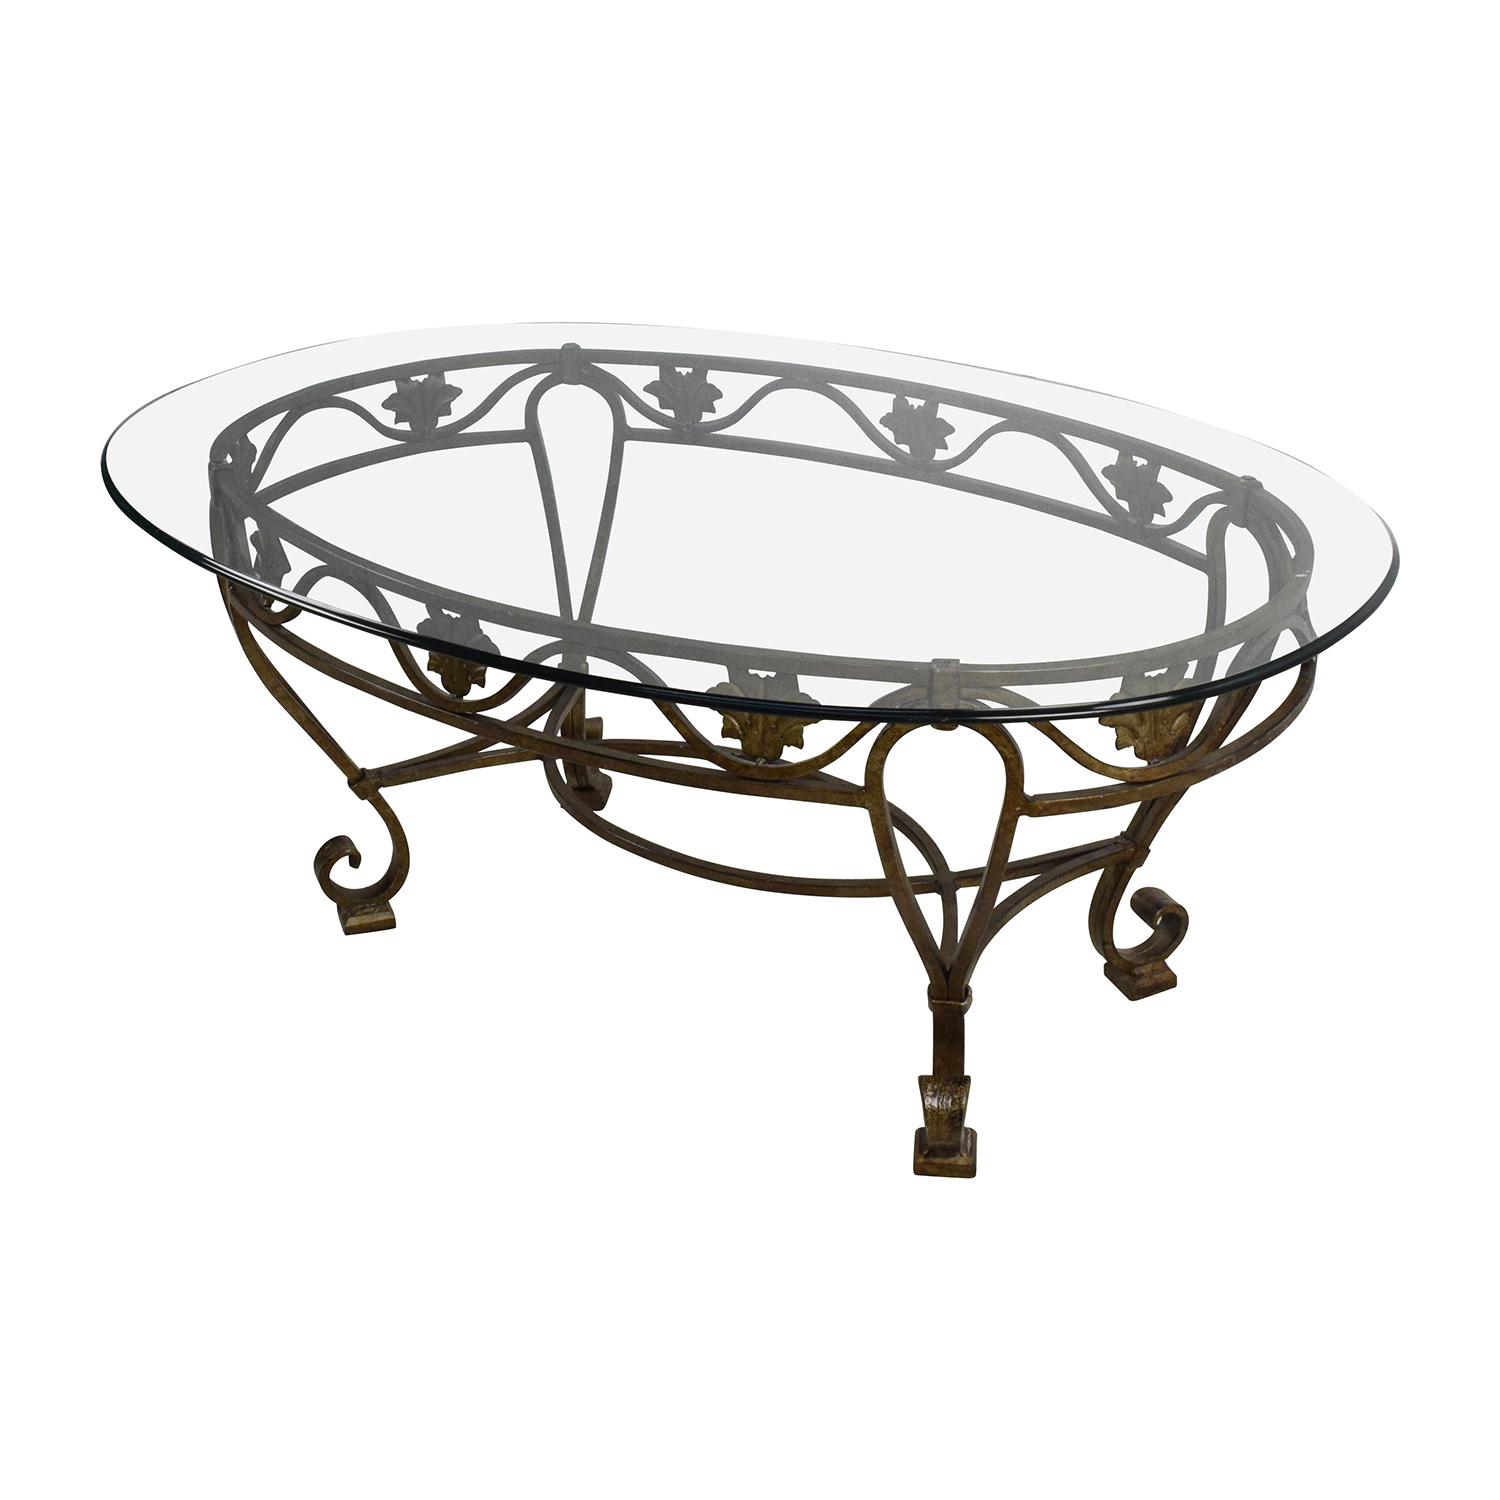 off iron cast glass top antique coffee table tables end tree log unfinished wood furniture kitchen island modern set short mainstays desk assembly instructions uttermost world